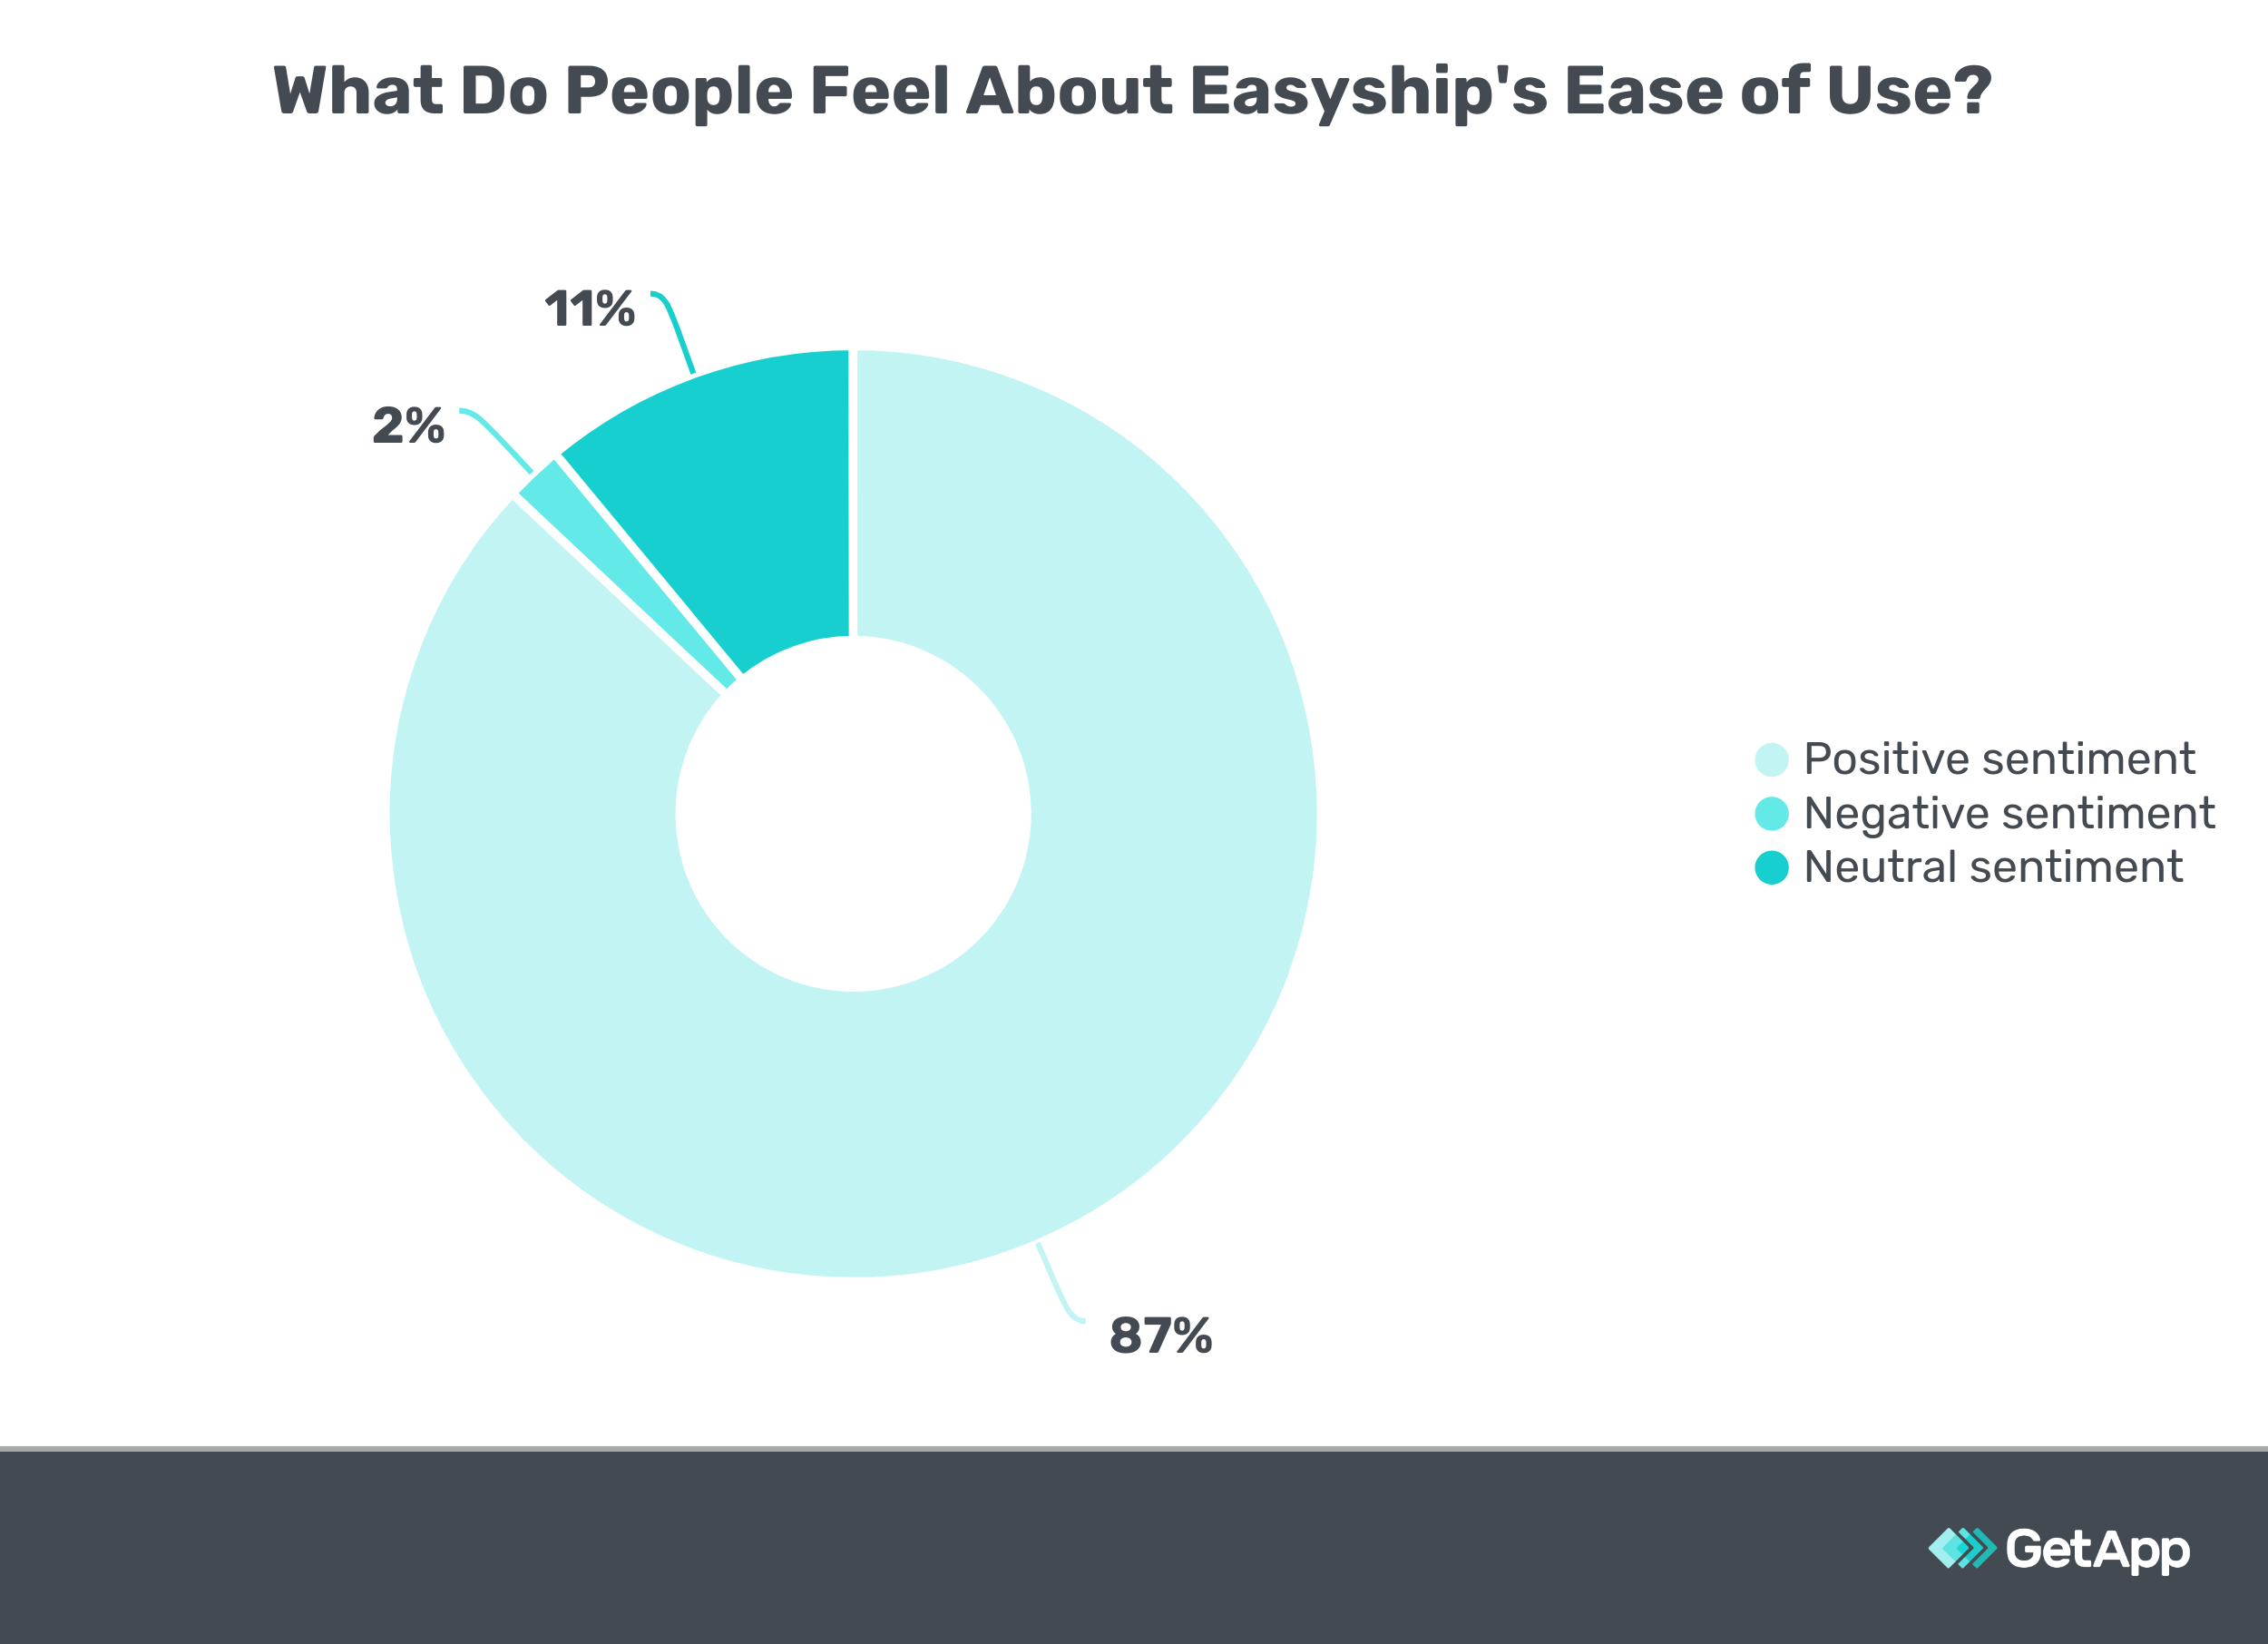 What Do People Feel About Easyship's Ease of Use